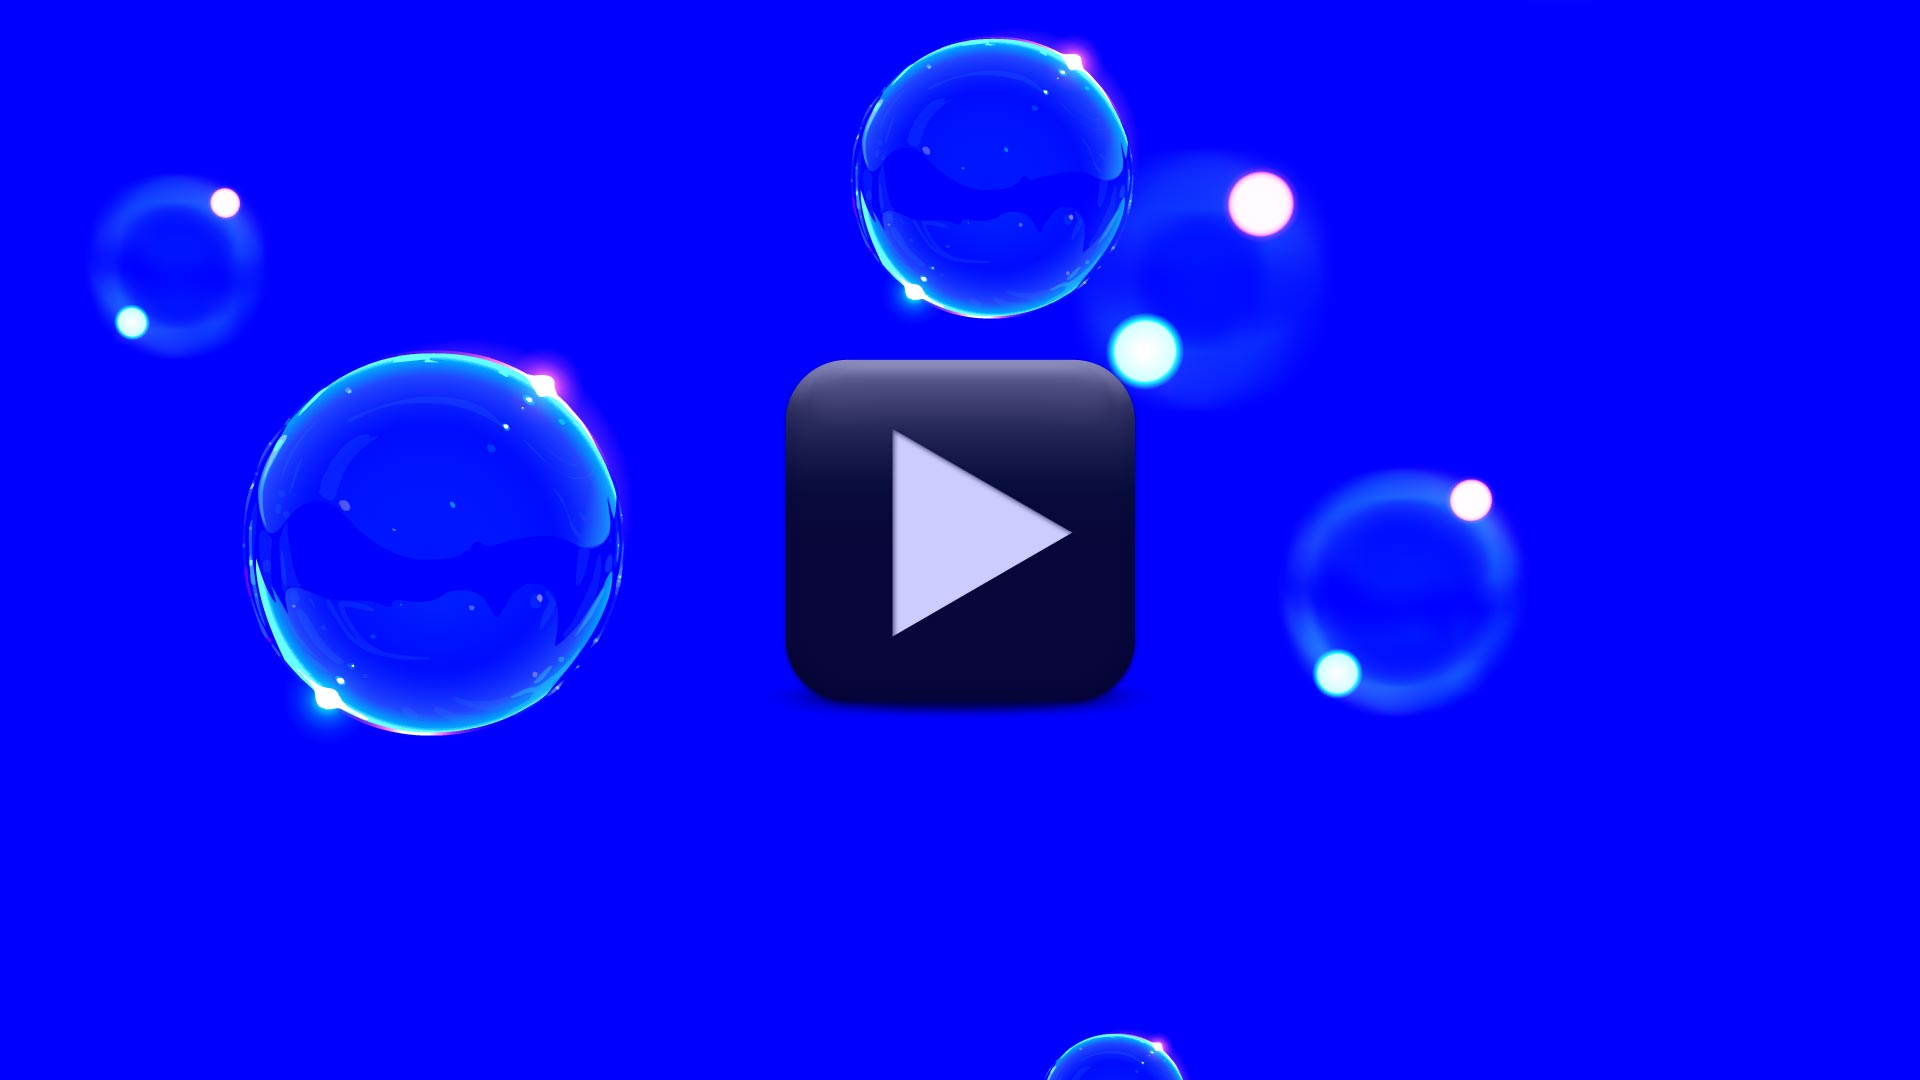 Bubbles Animation Video Background-Blue Screen Video